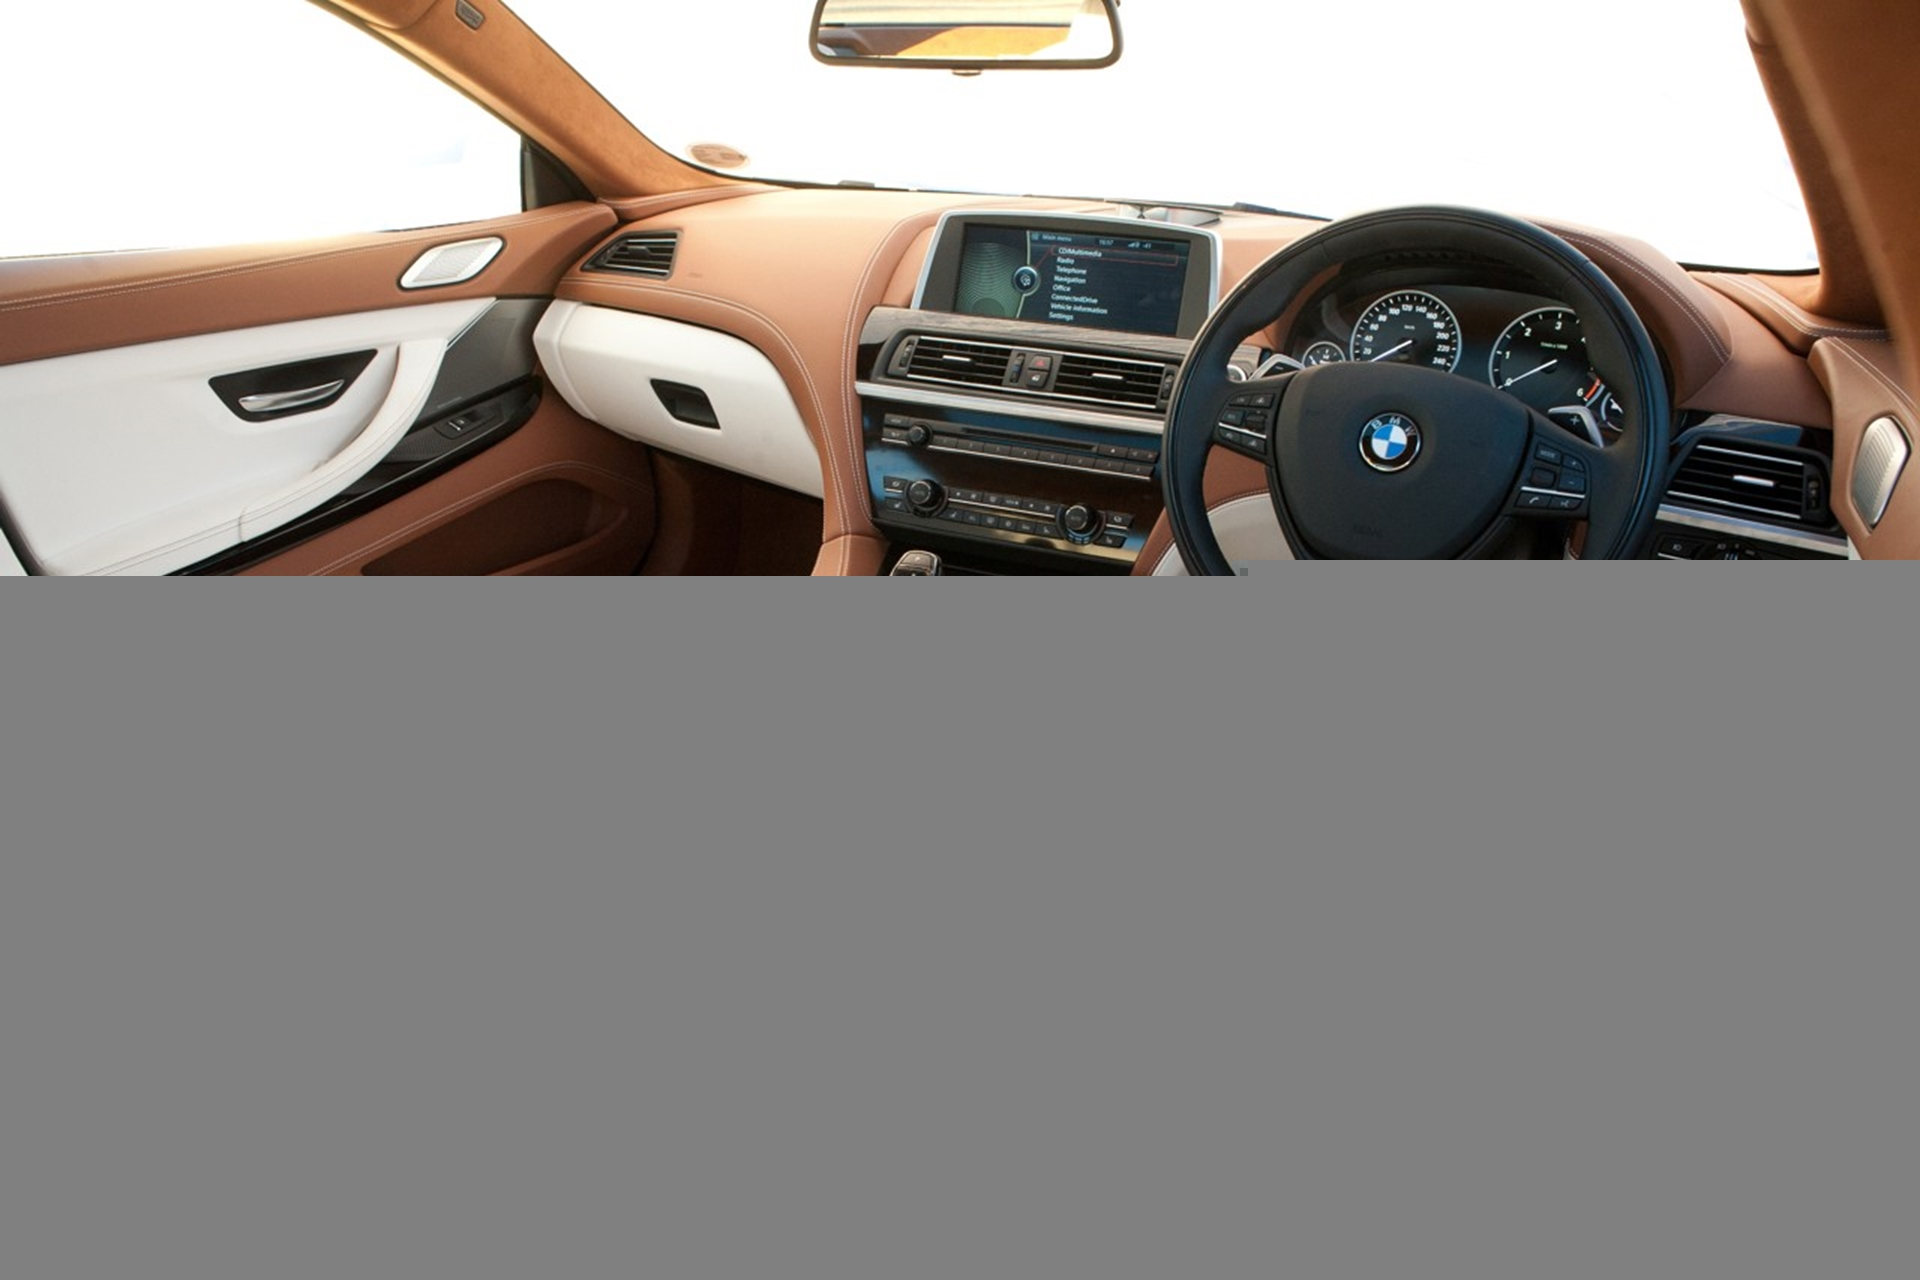 BMW 6 Series Gran Coupe inside